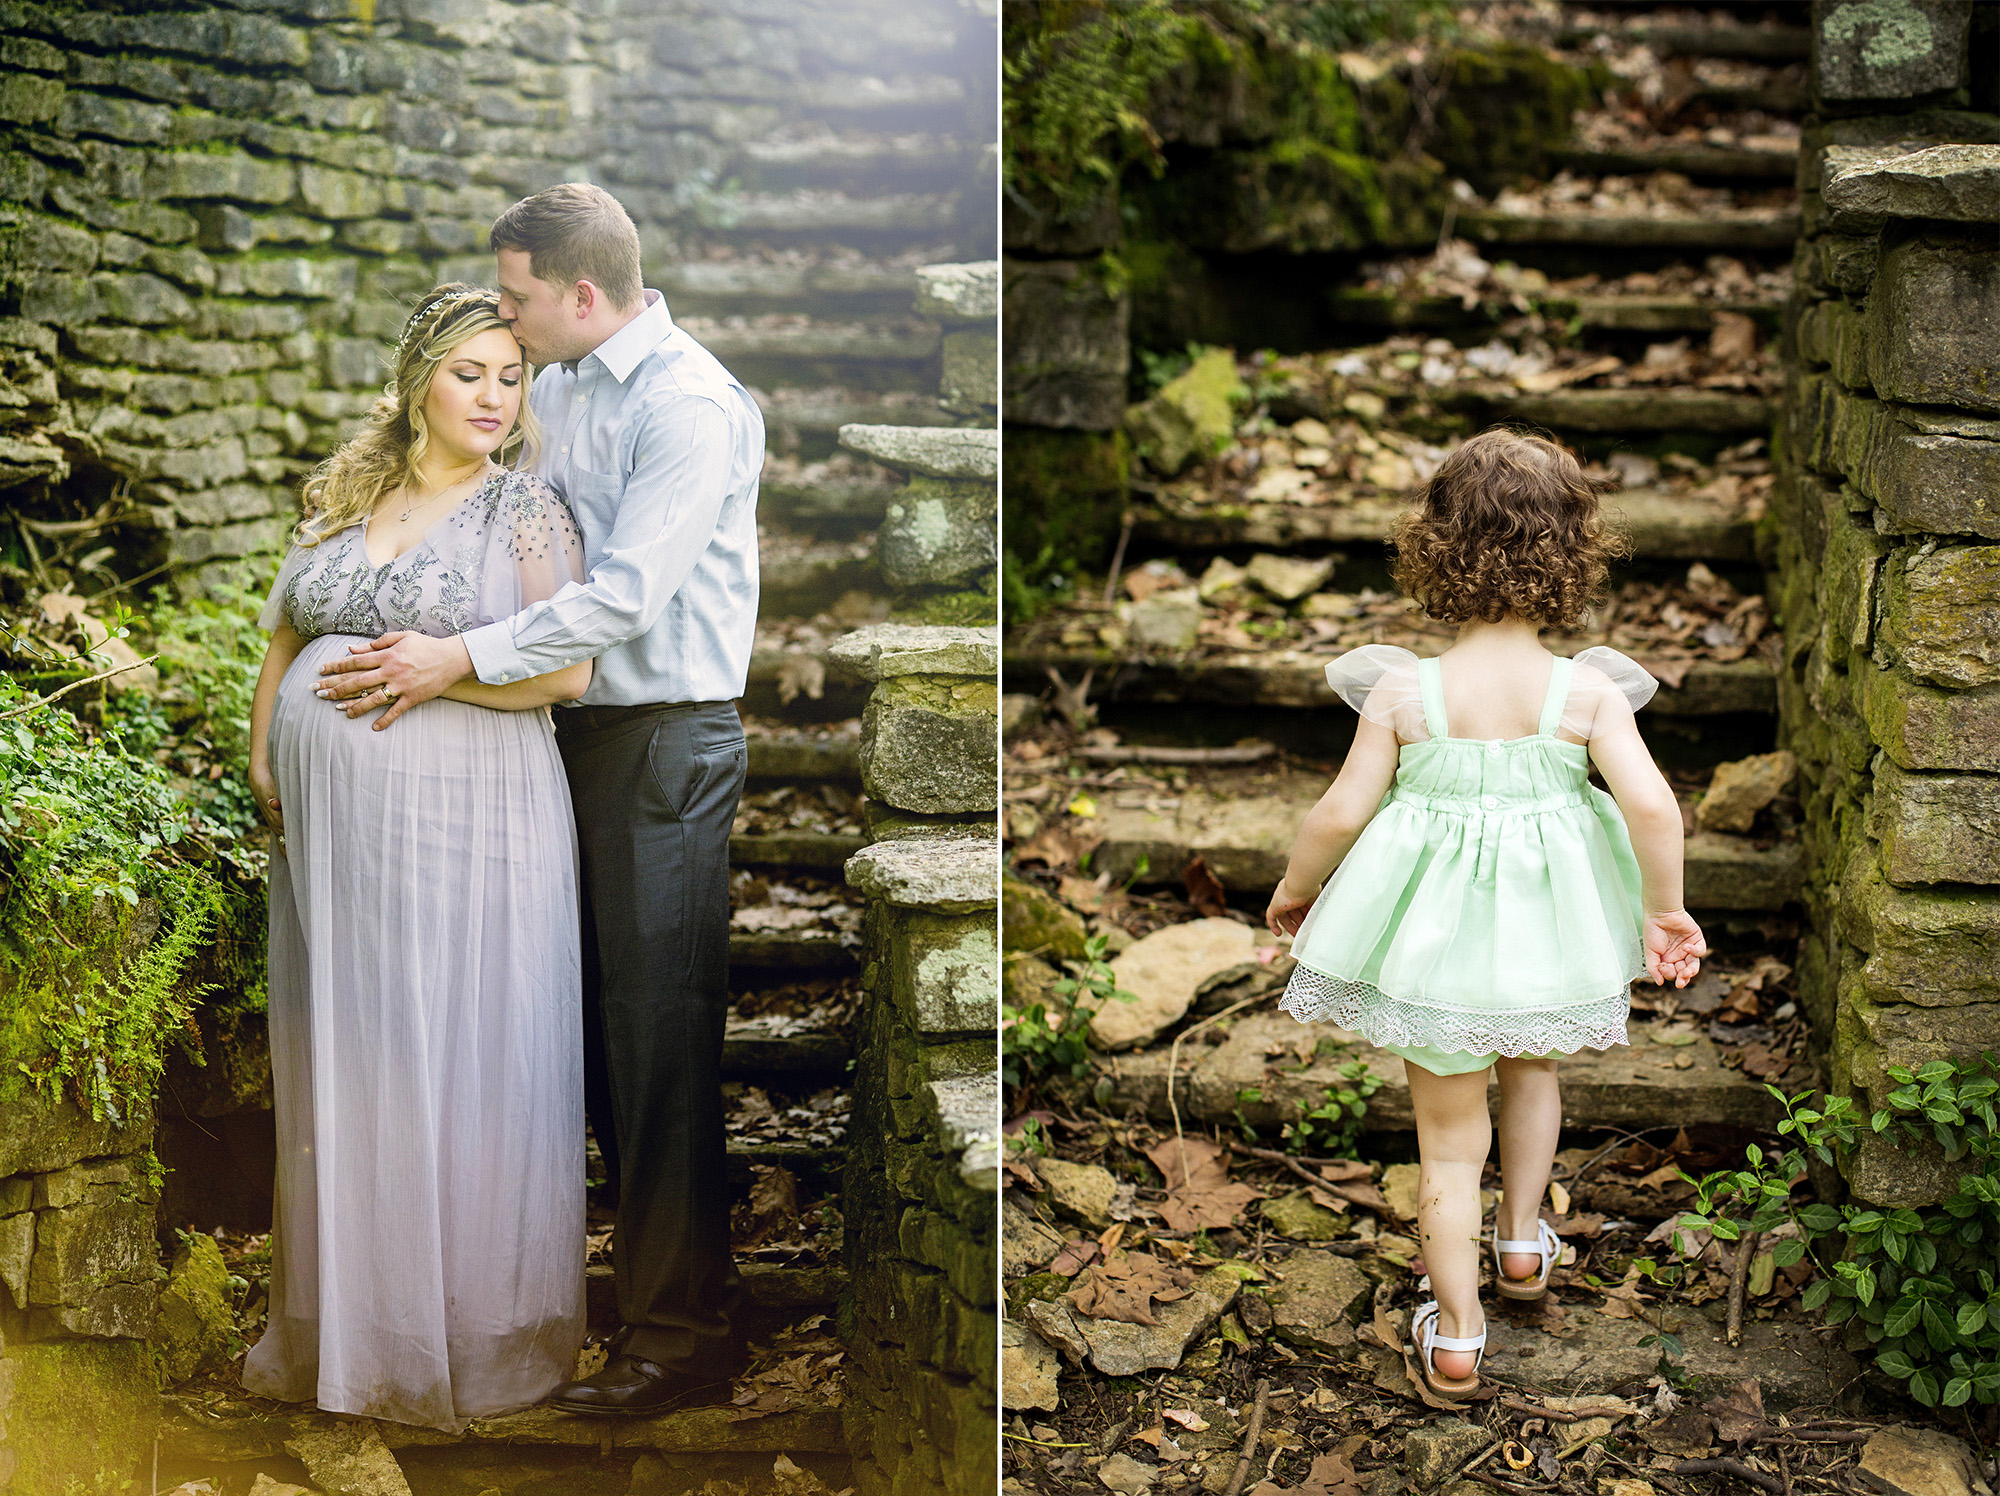 Seriously_Sabrina_Photography_Lexington_Kentucky_Fairytale_Maternity_Portraits_Horse_Park_Reynolds_10.jpg